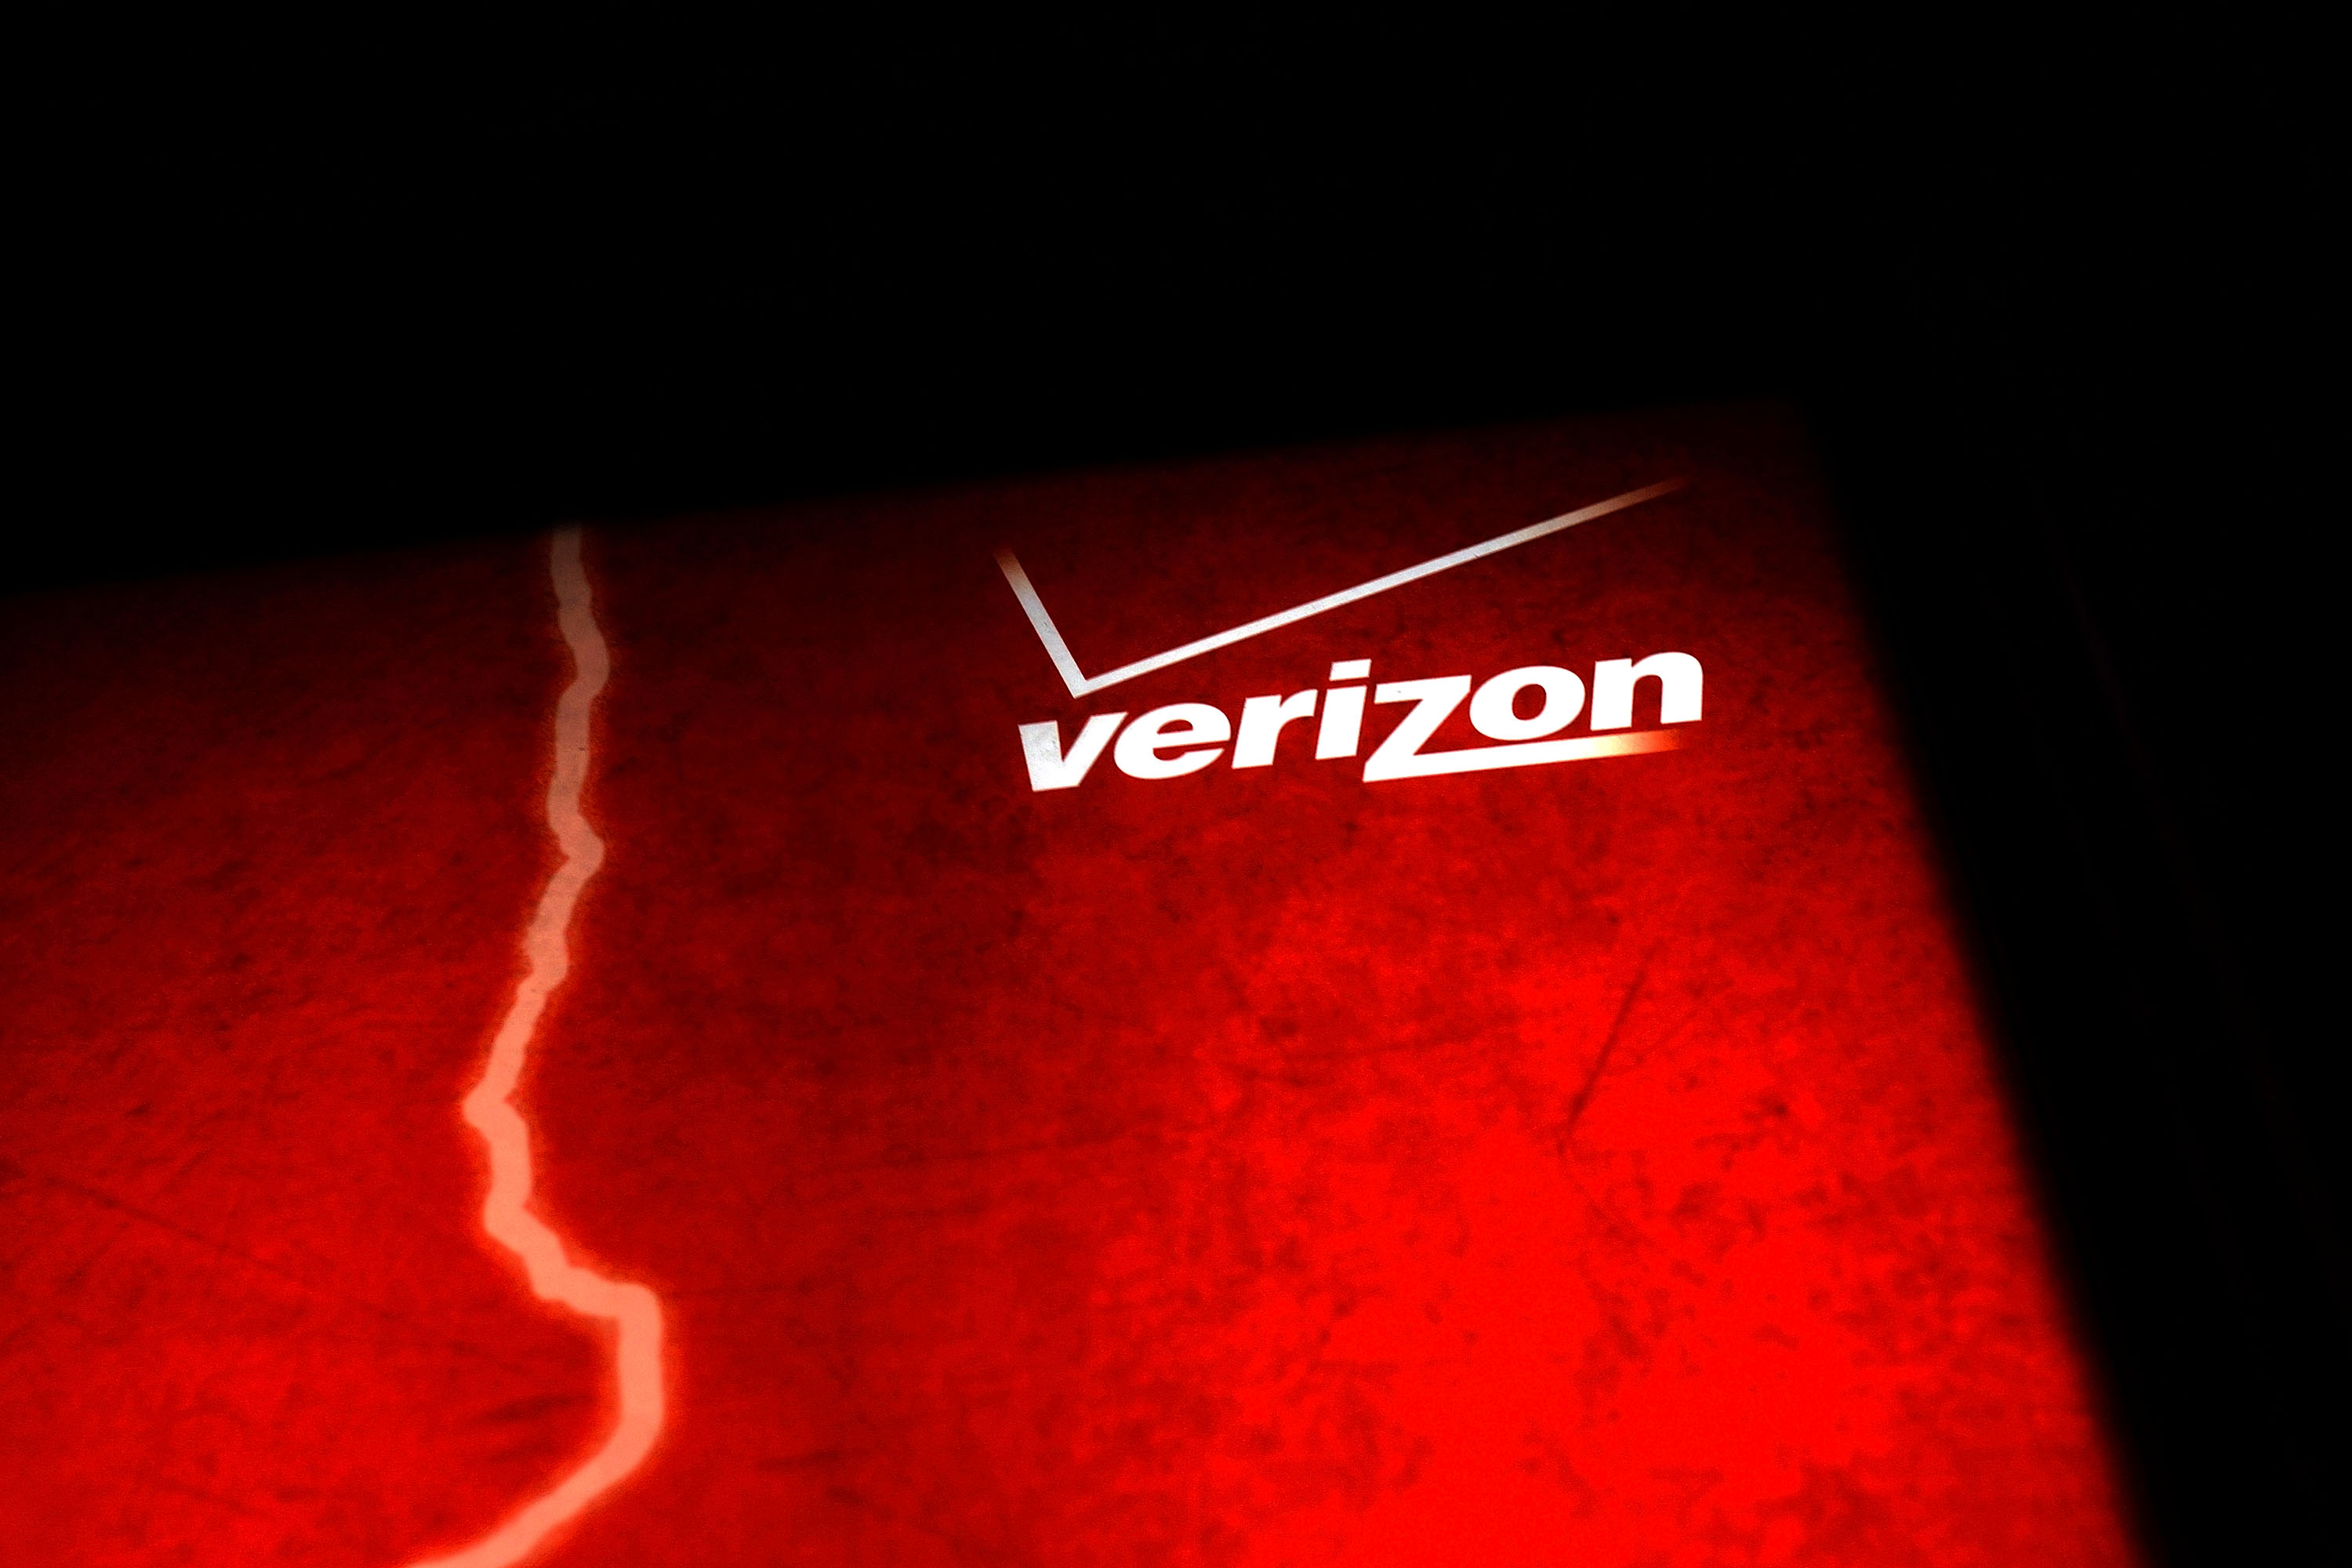 verizon stops throttling more firefighters, plans unlimited data